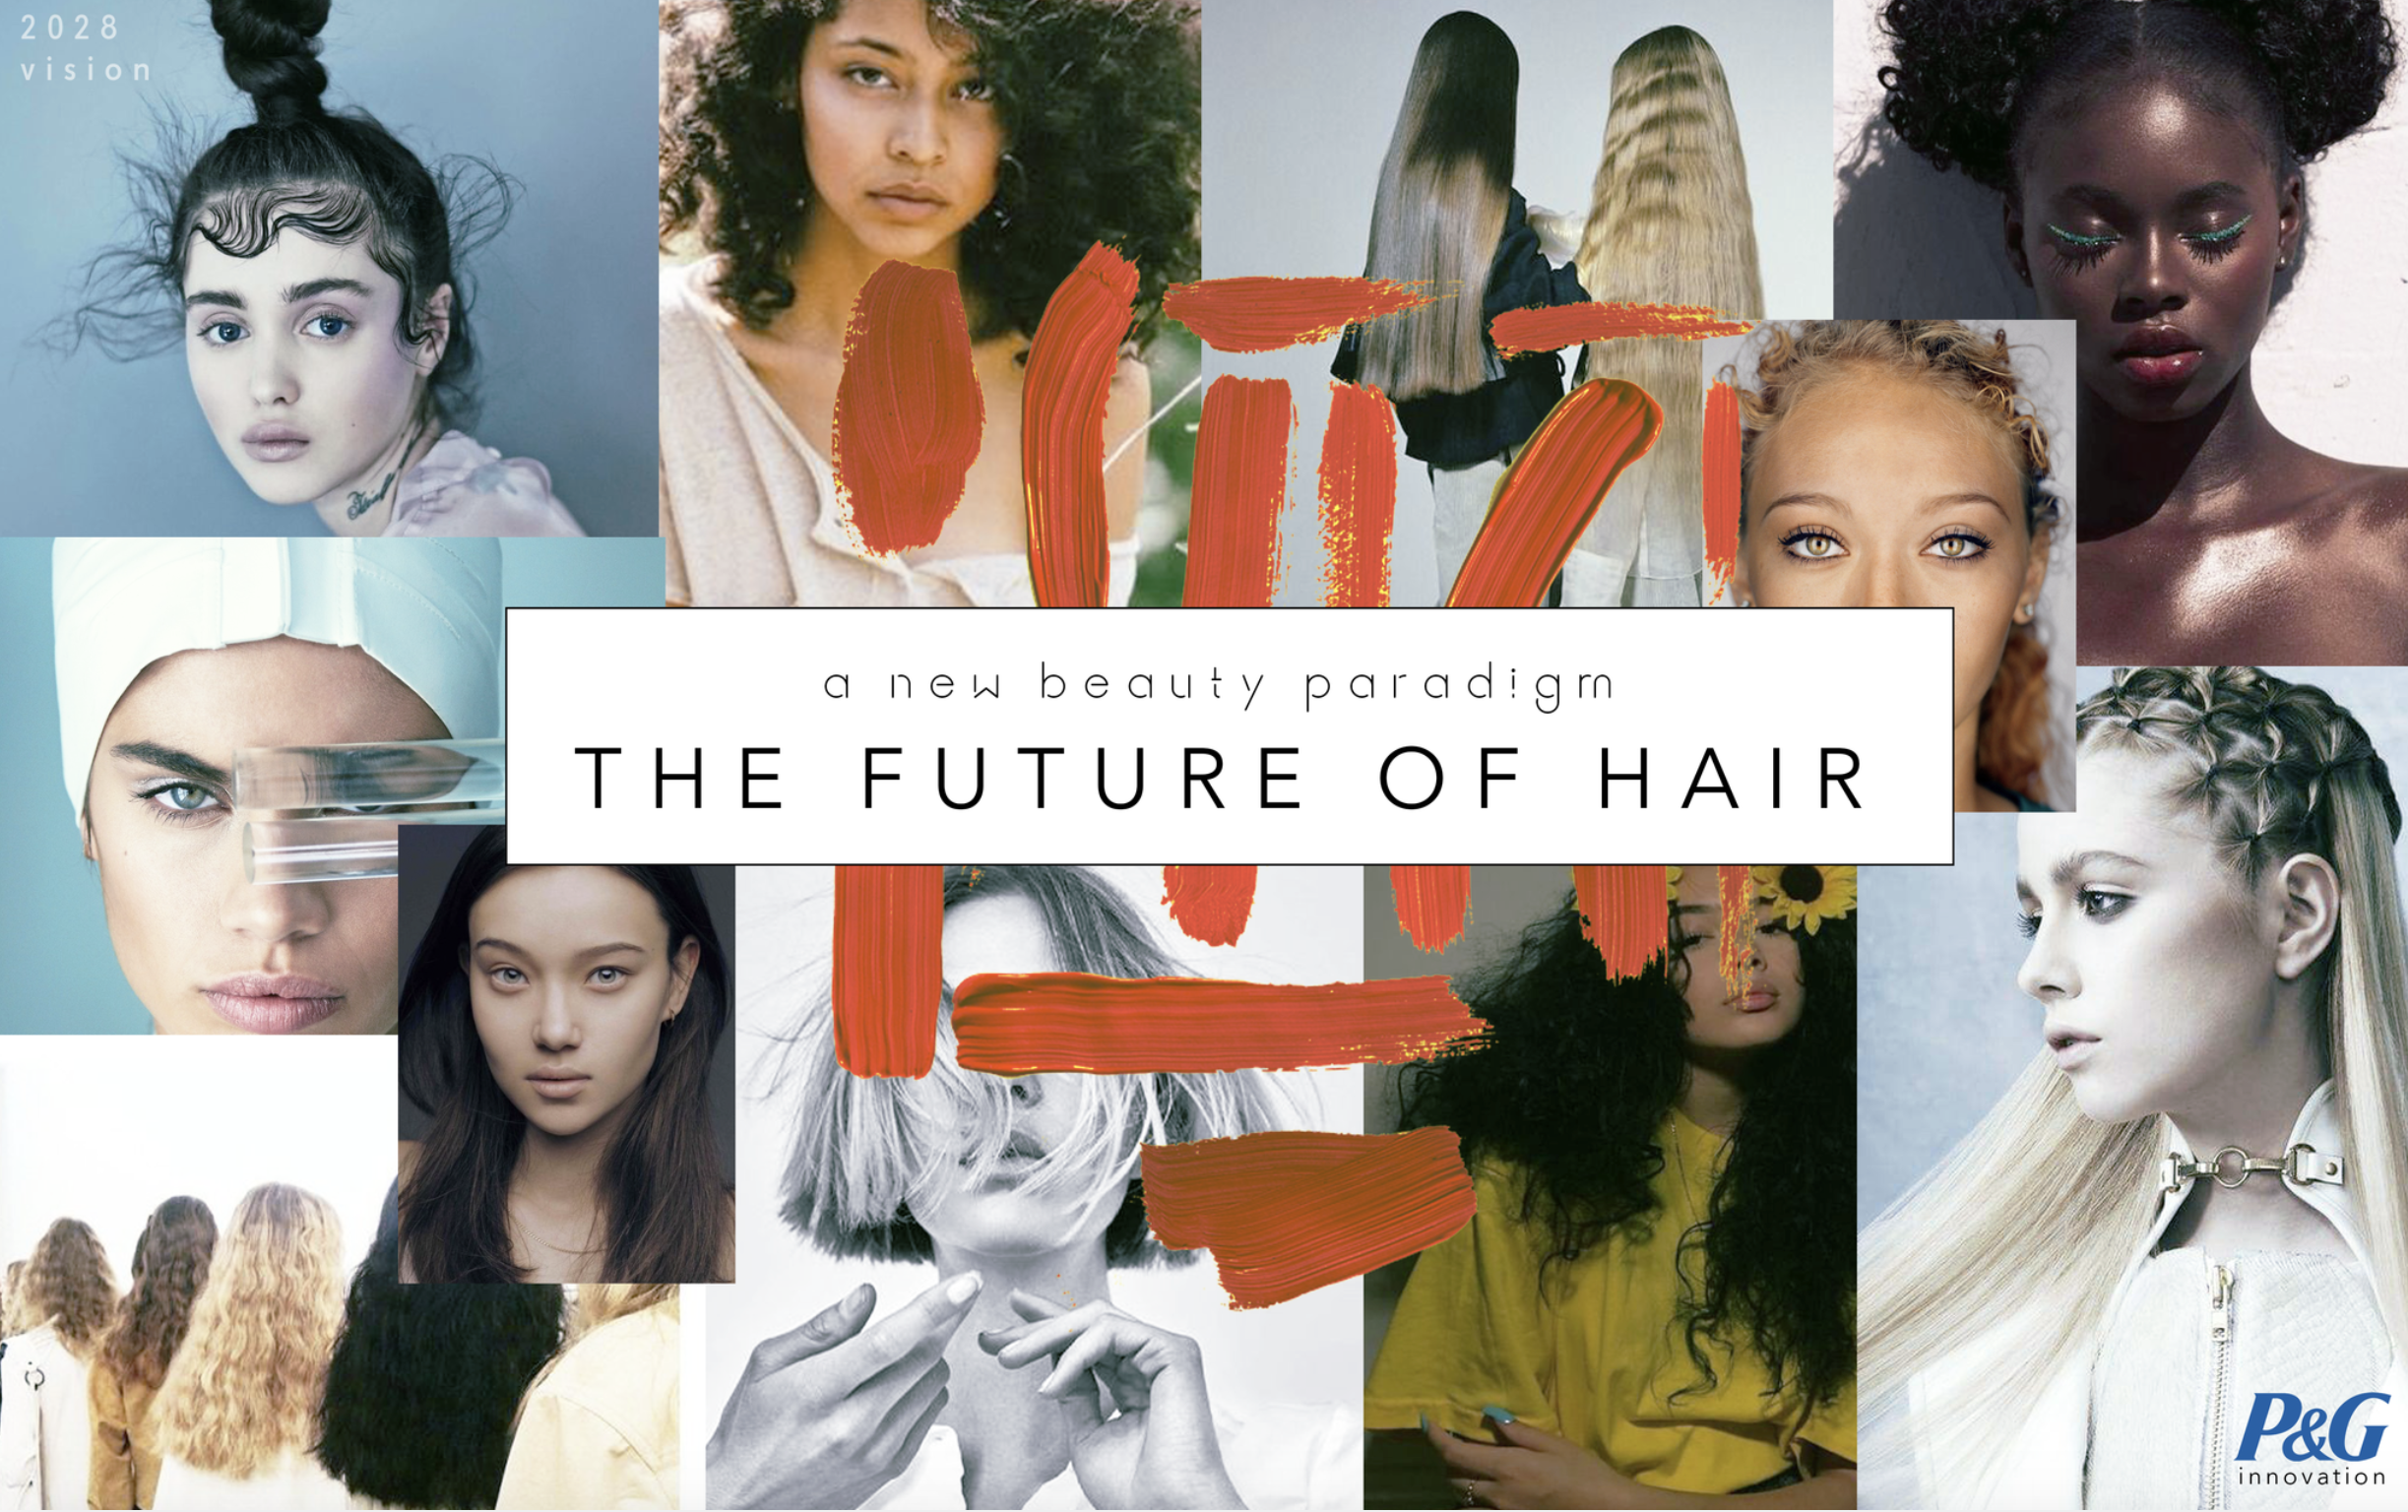 INNOVATION CONSULTING Future of Hair: 2028 Vision - Proctor & Gamble